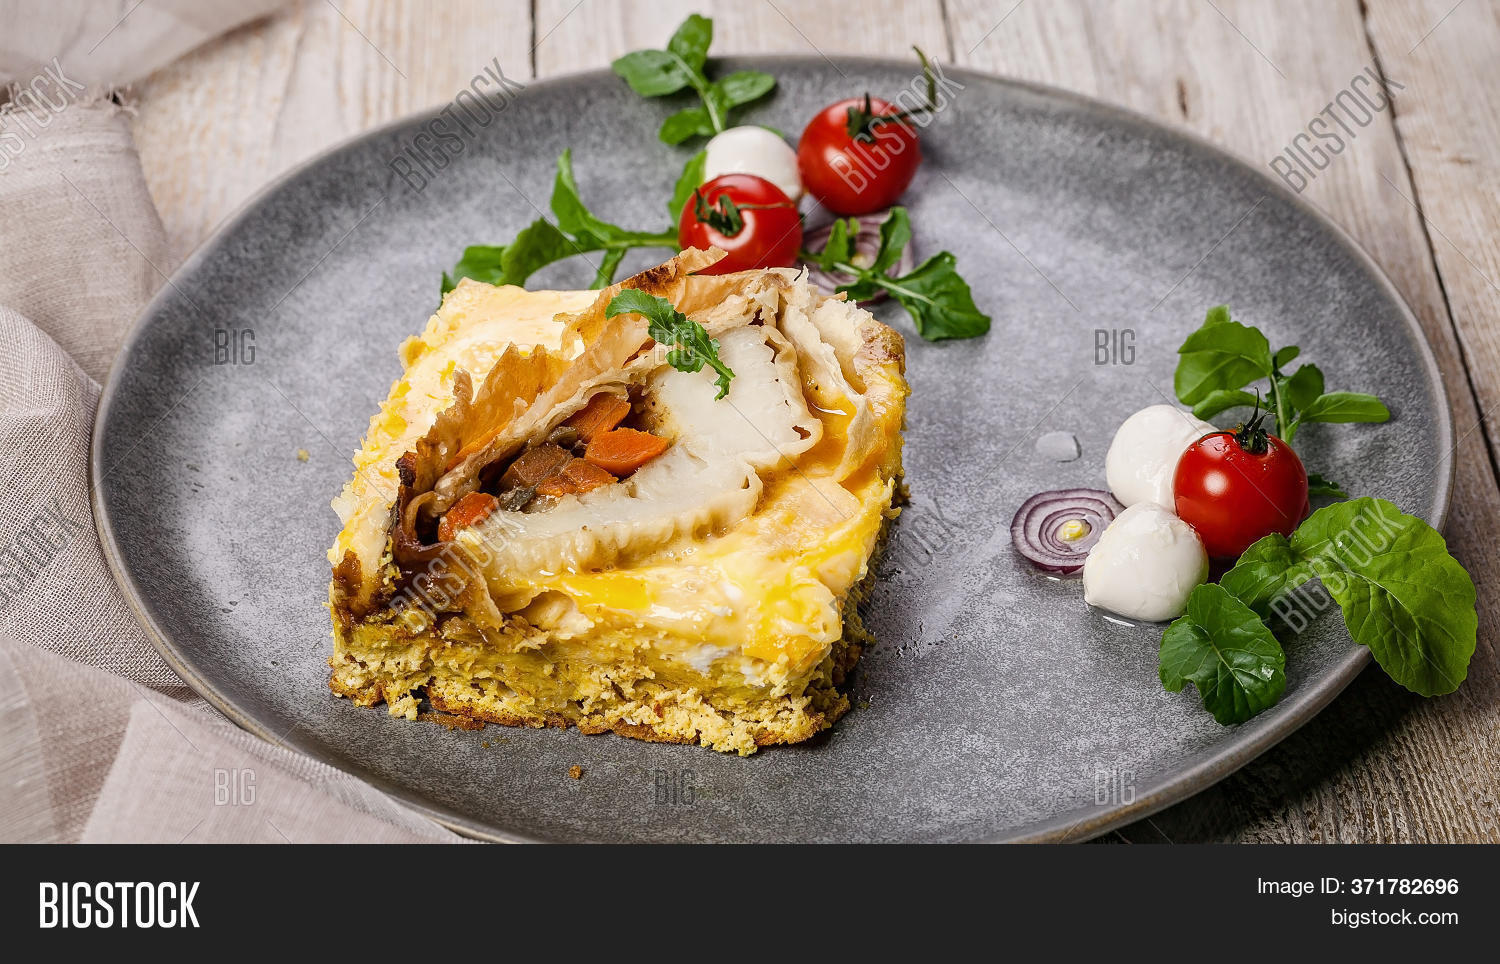 Food Banner Omelet Image Photo Free Trial Bigstock